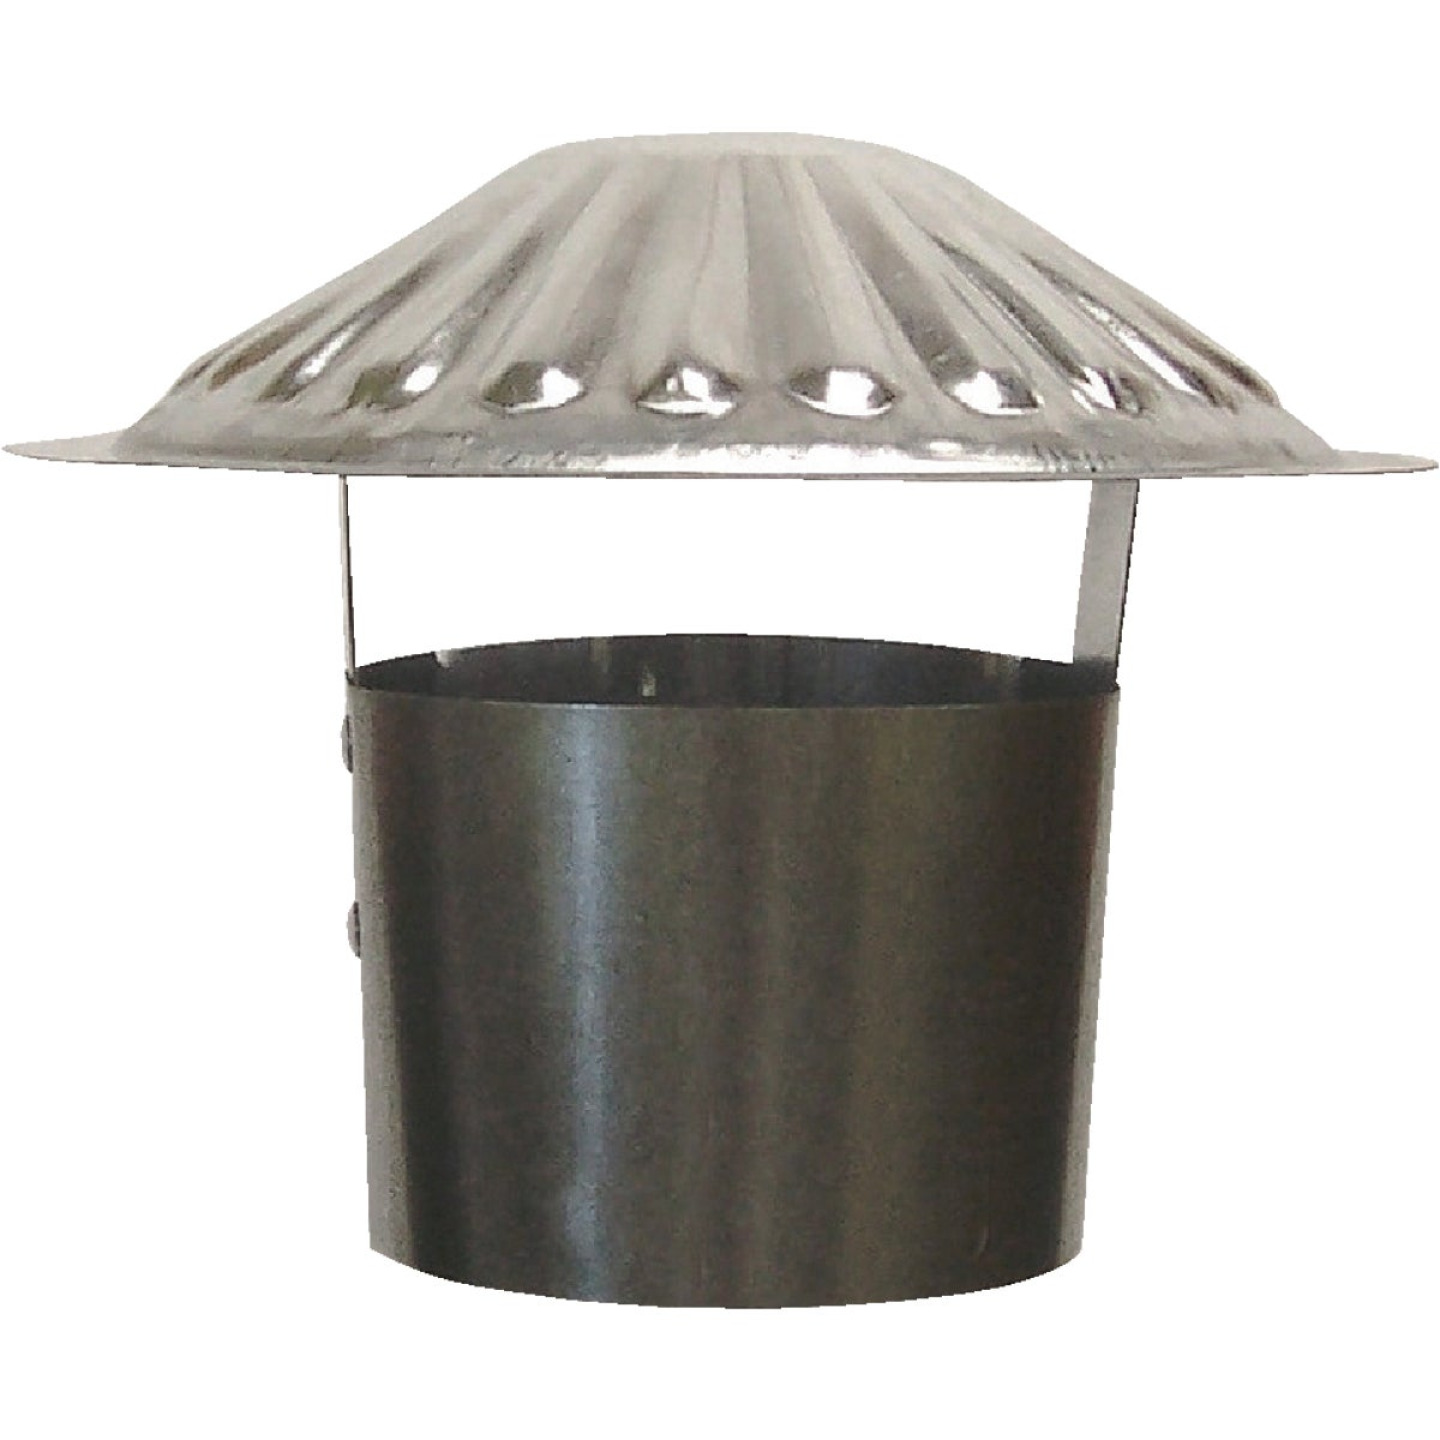 S & K Galvanized Steel 4 In. x 6-3/4 In. Vent Pipe Cap Image 1